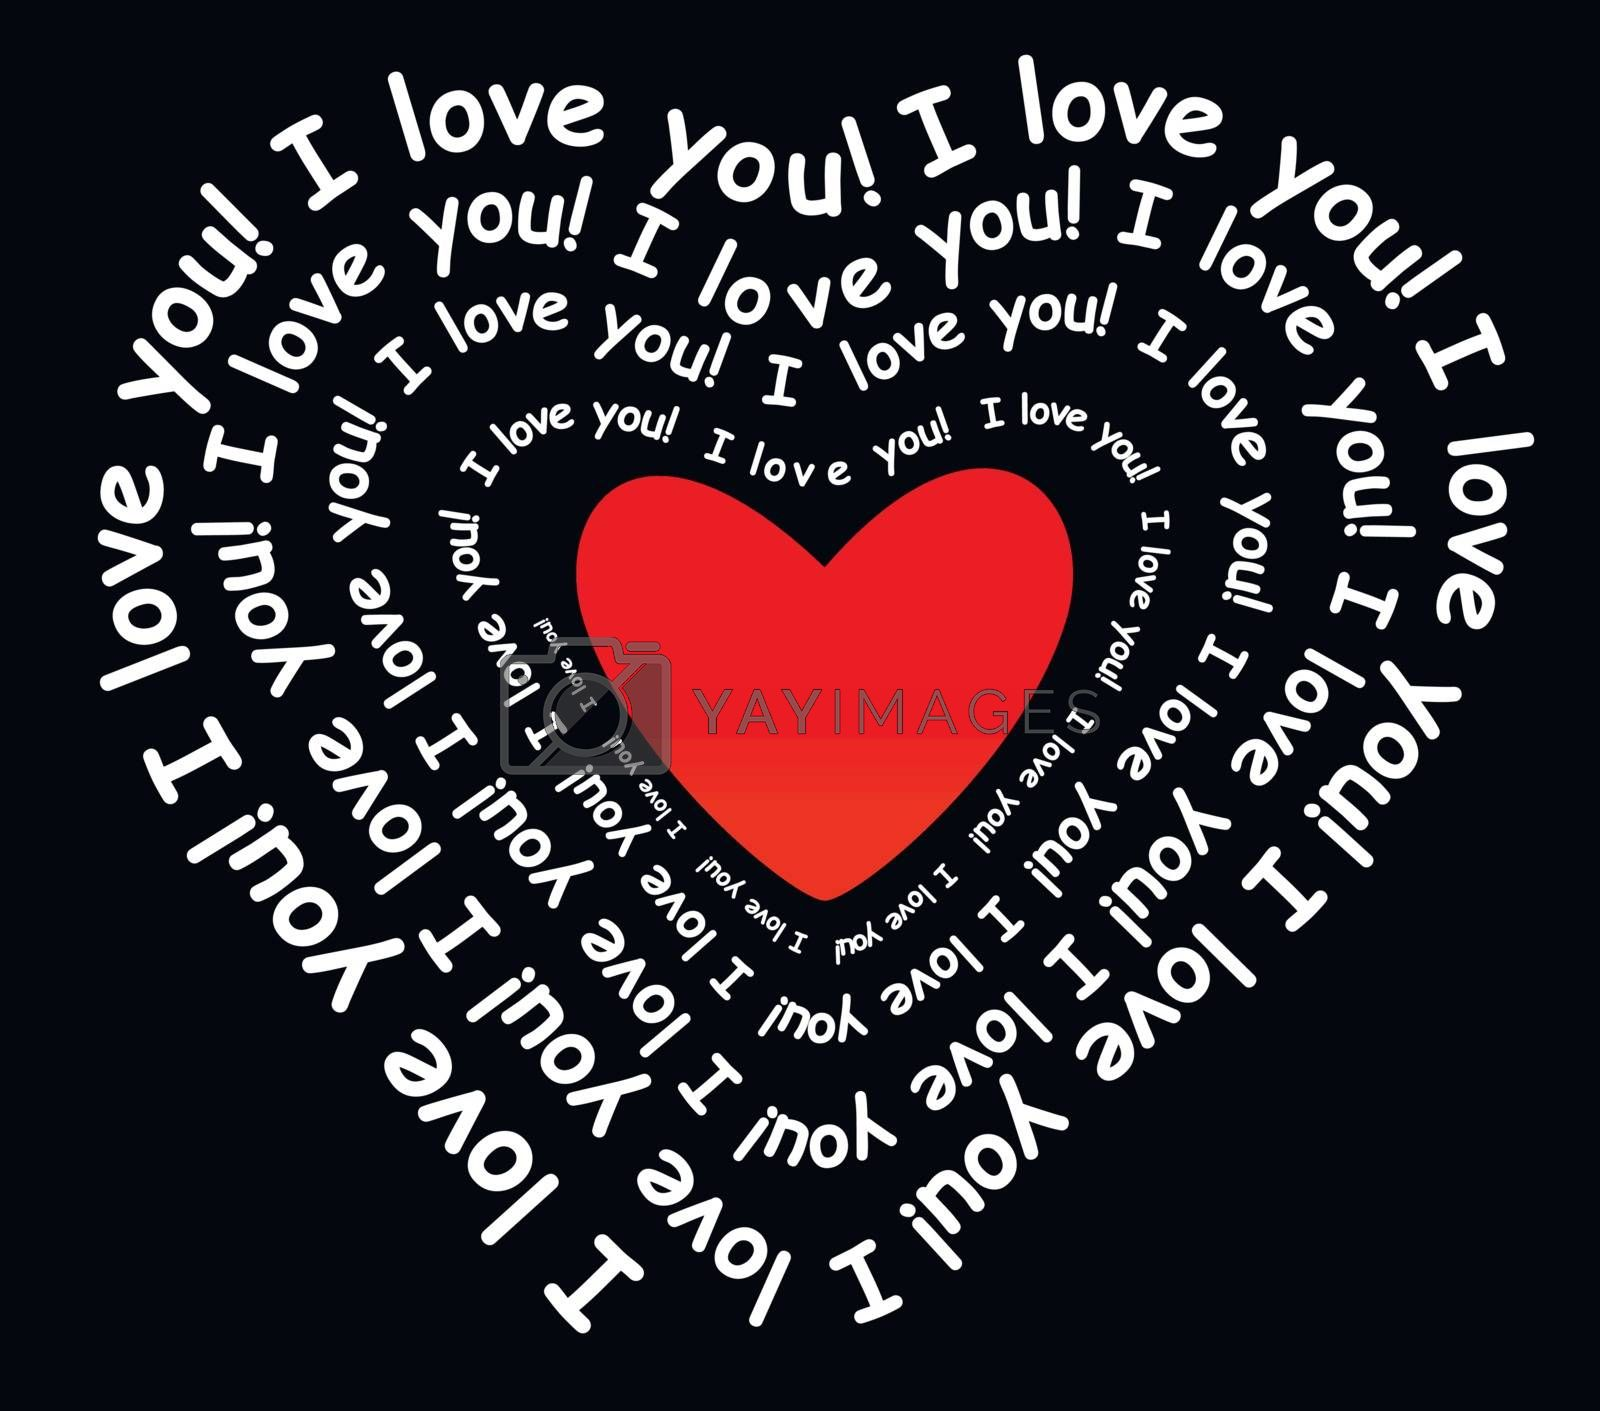 I love you in the form of heart